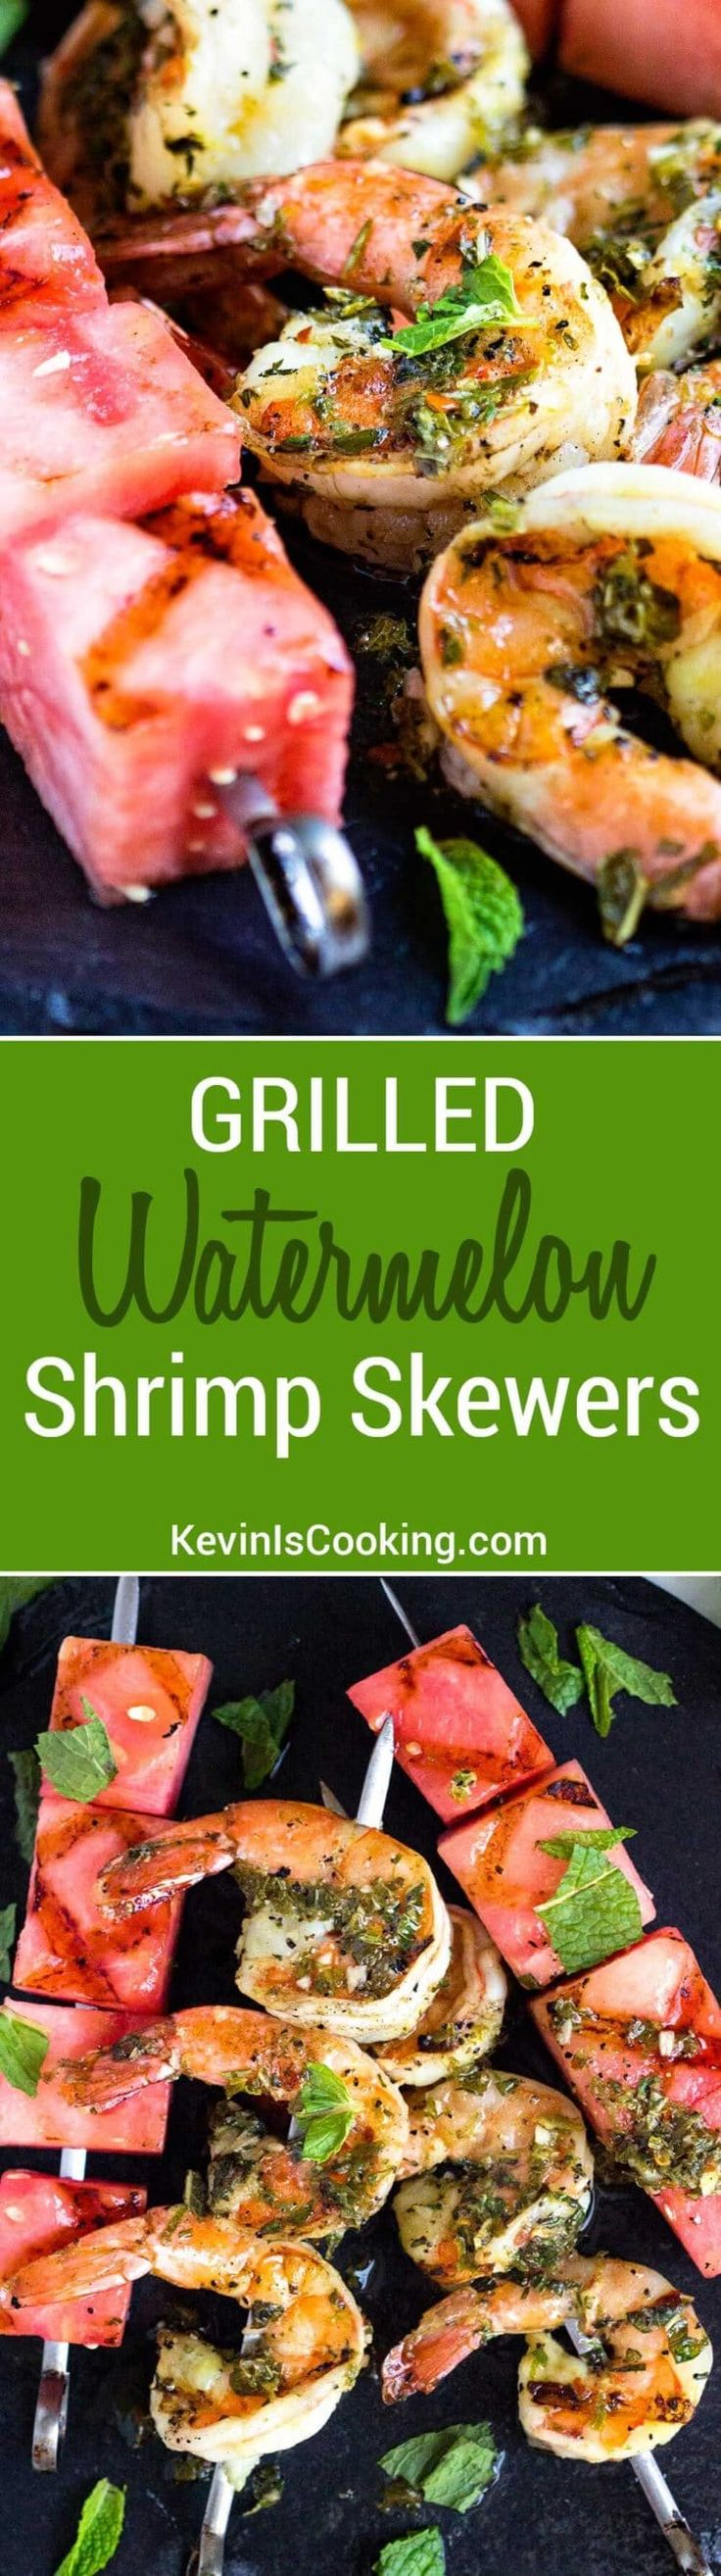 These super easy to make Watermelon and Grilled Shrimp Skewers are quick on the grill and on the plate in minutes. The watermelon rocks, so good! via @keviniscooking